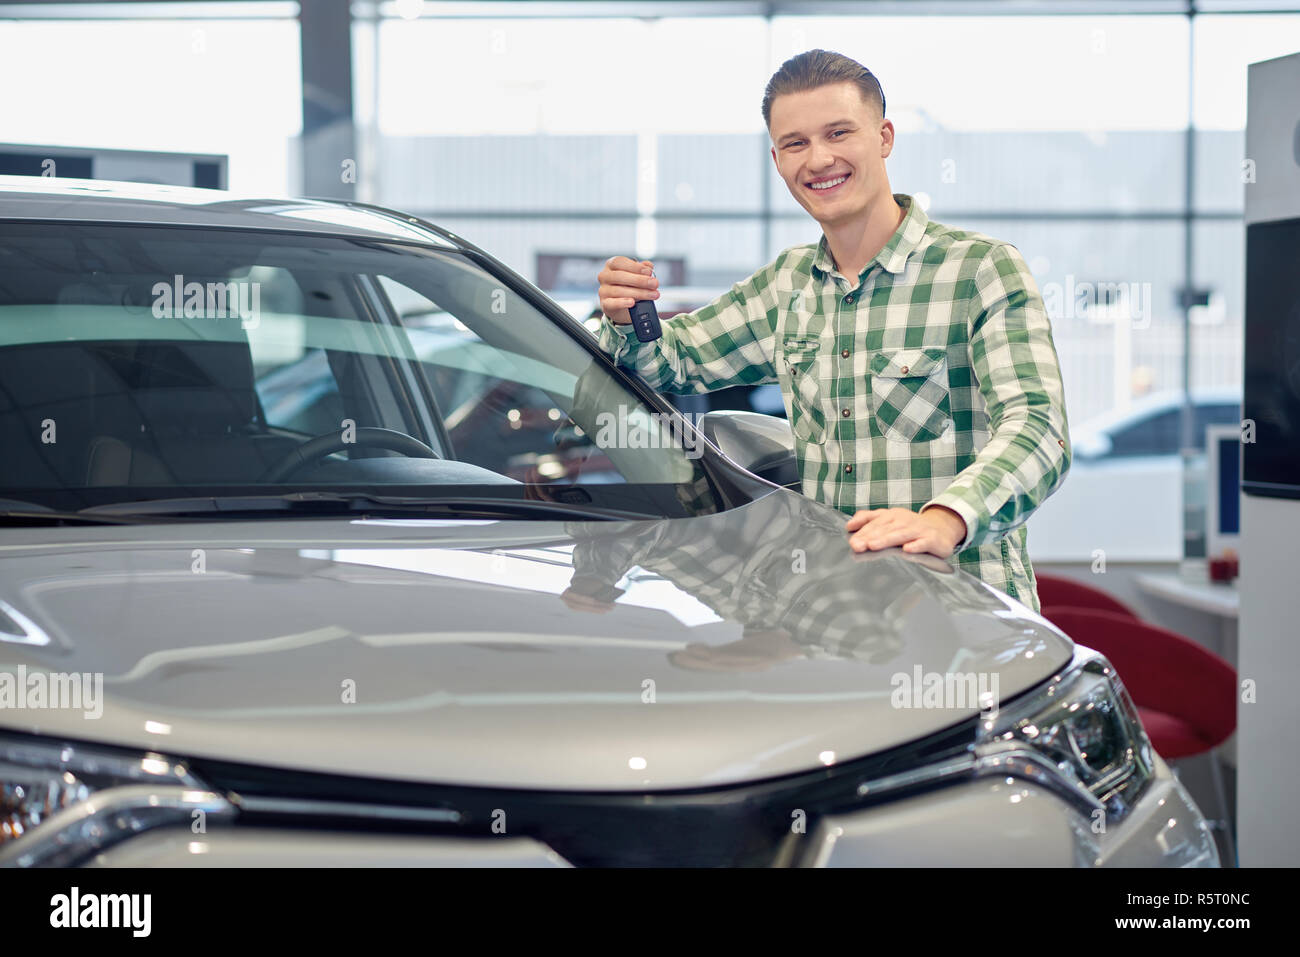 One Owner Car Guy >> One Owner Car Stock Photos One Owner Car Stock Images Alamy